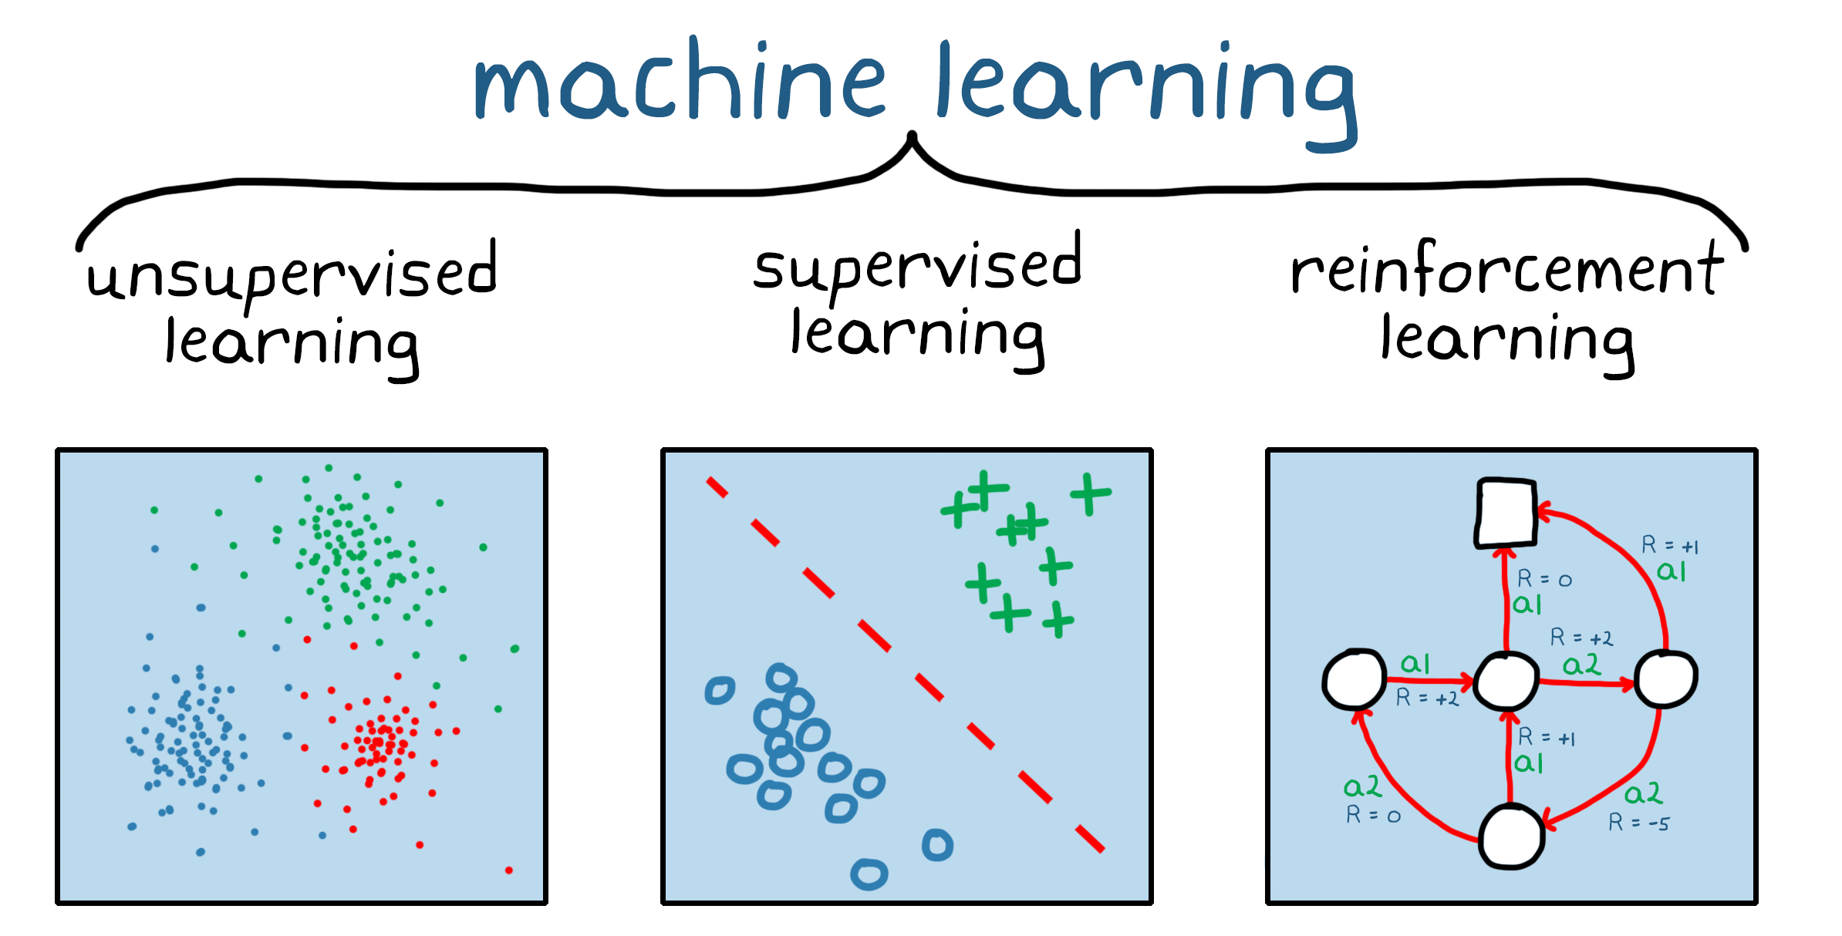 Figura 1. Tre ampie categorie di machine learning: apprendimento senza supervisione, apprendimento con supervisione e reinforcement learning